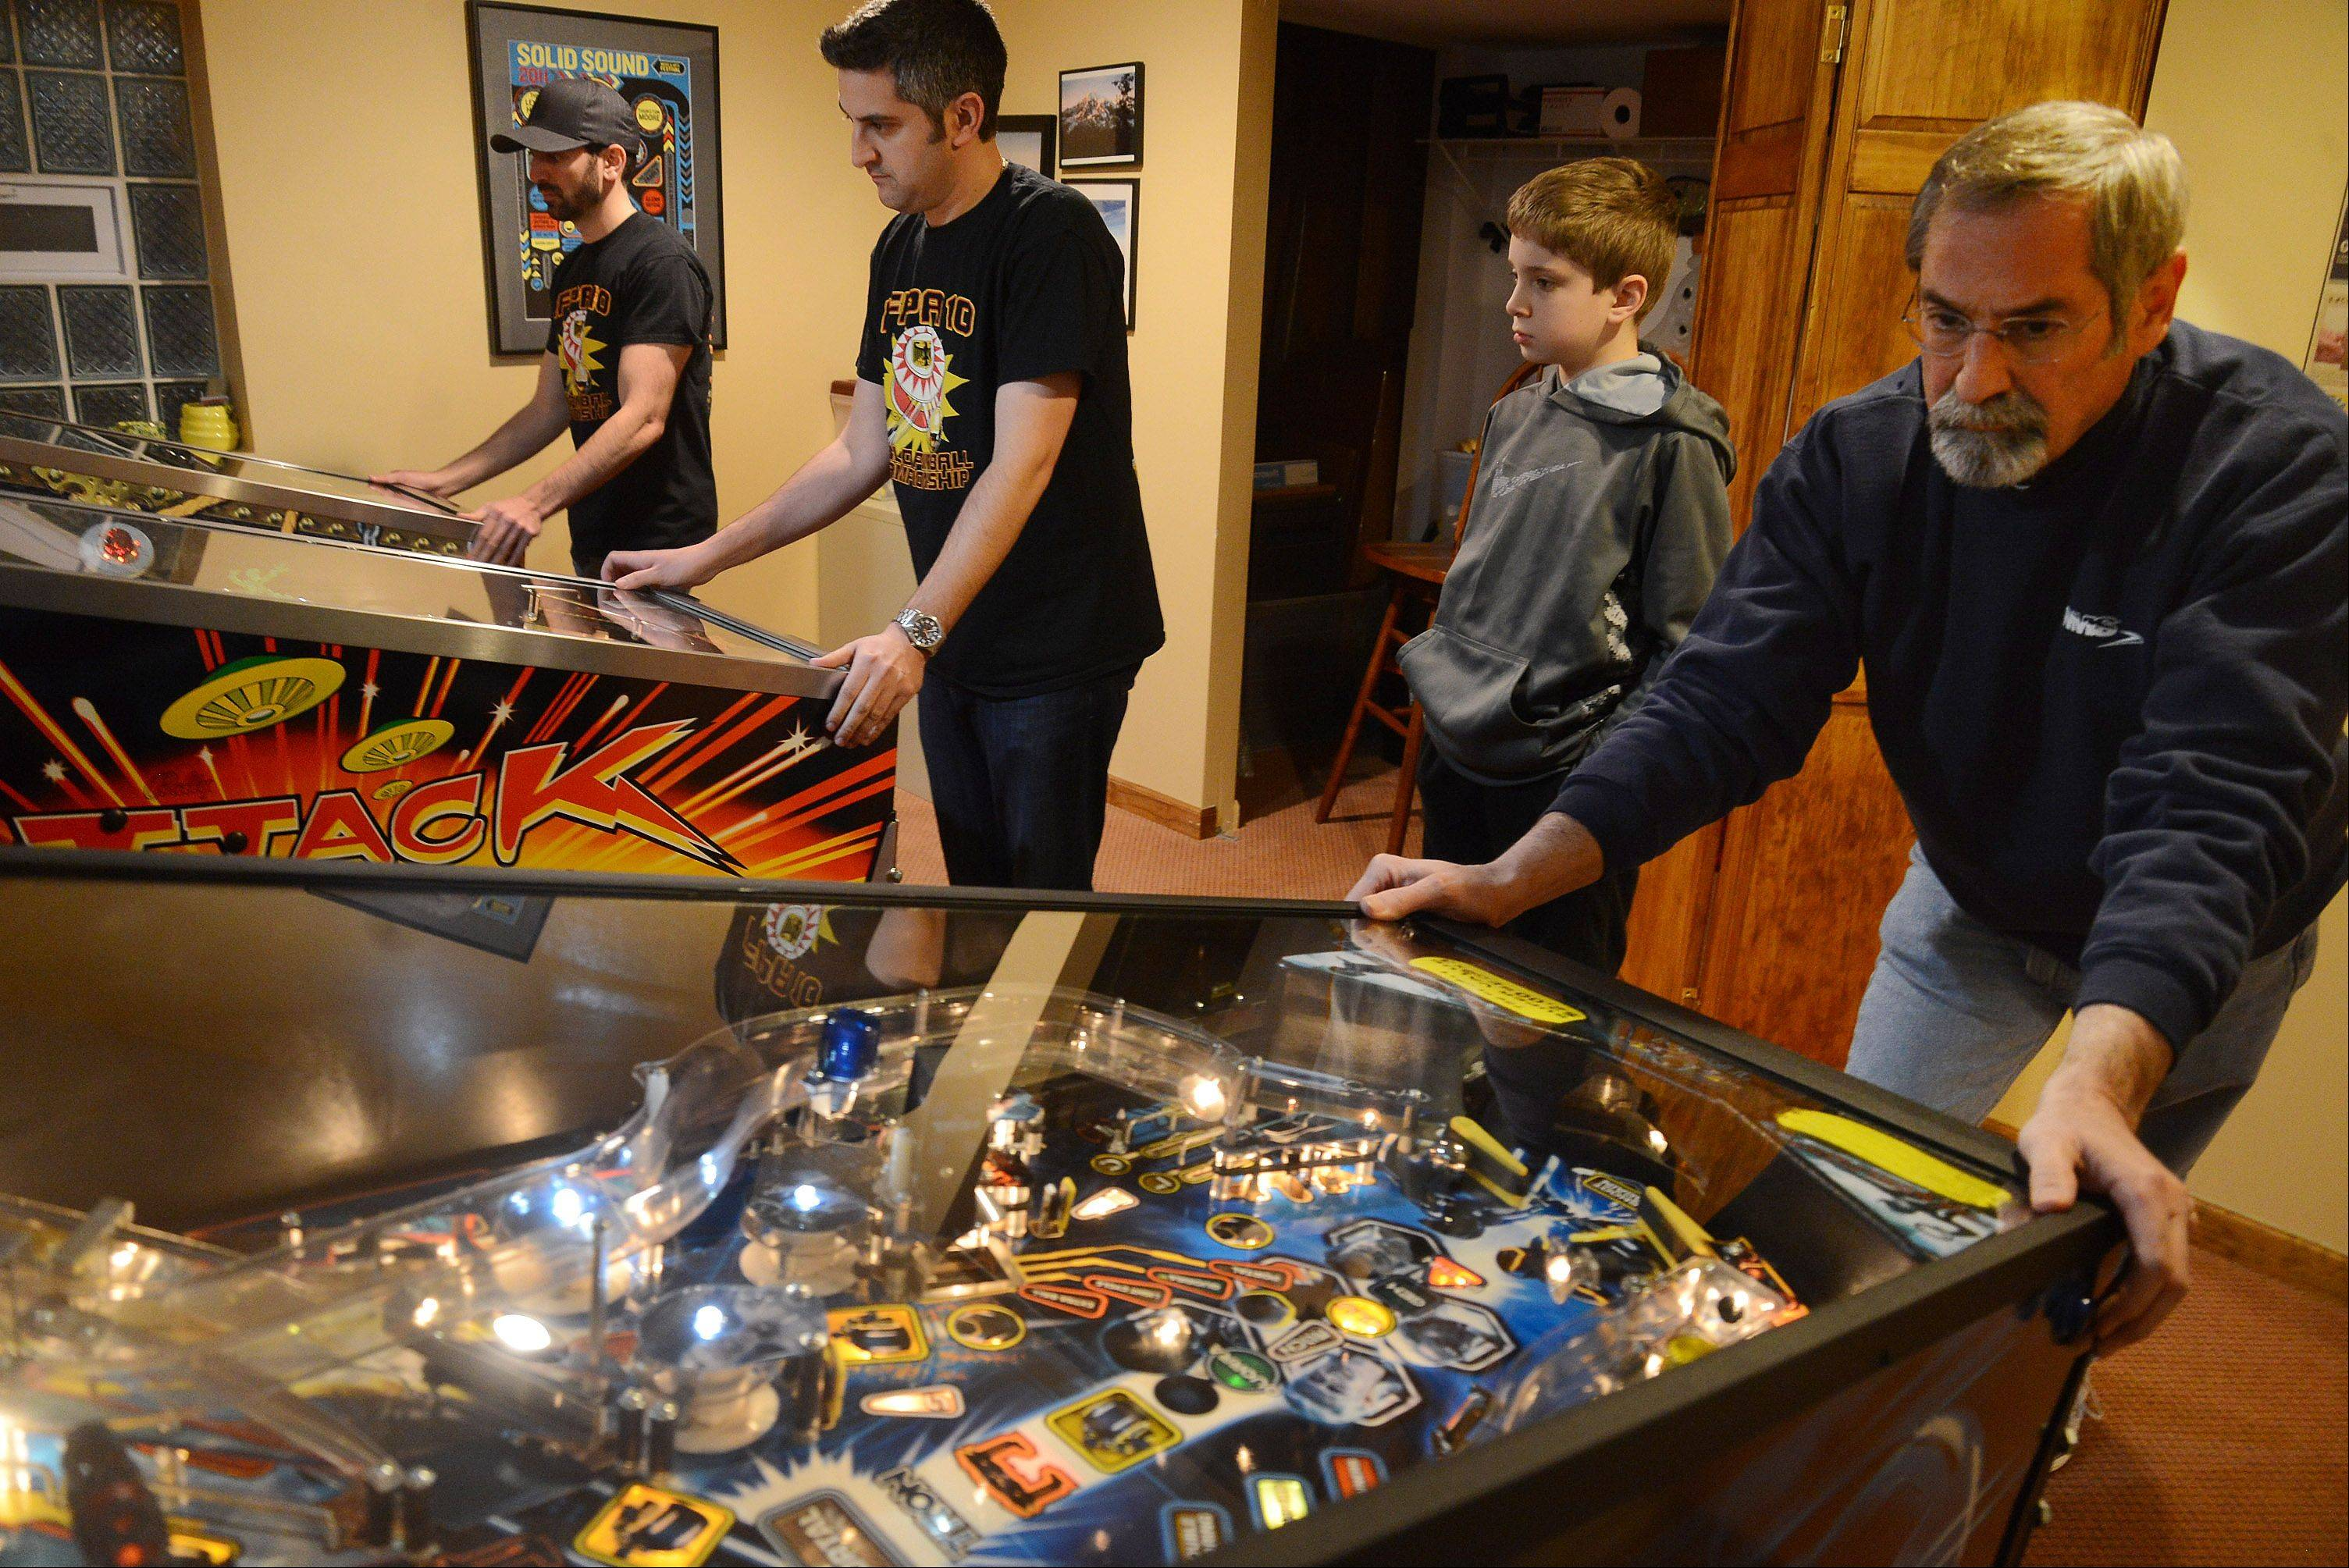 Matthew Hooper, center, watches as the family Sharpe, from left, Zach, Josh and dad Roger work the pinball machines Saturday at the International Flipper Pinball Association tournament in Lincolnshire.